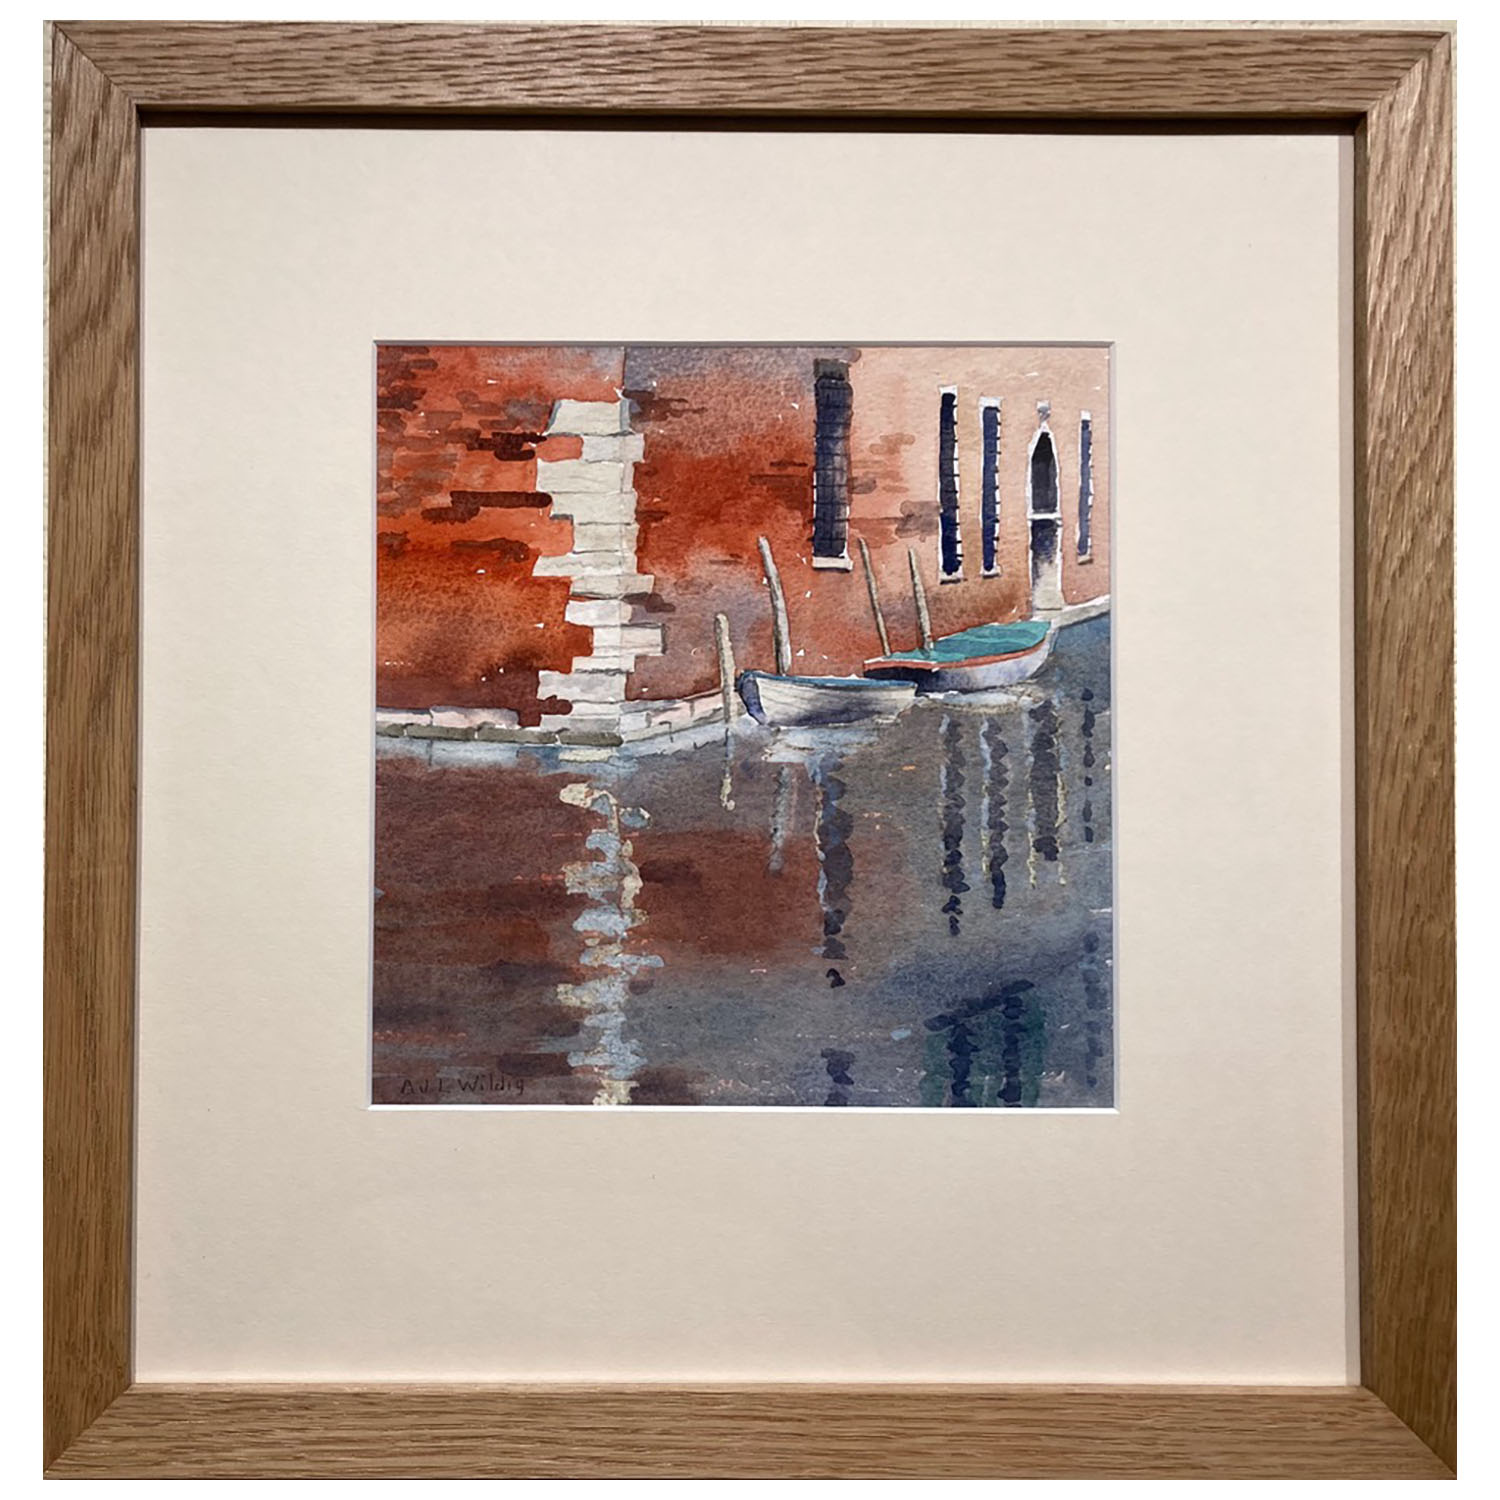 Anthony Wildig, Venice Backwater, Watercolour, 394x380mm, £120, Framed